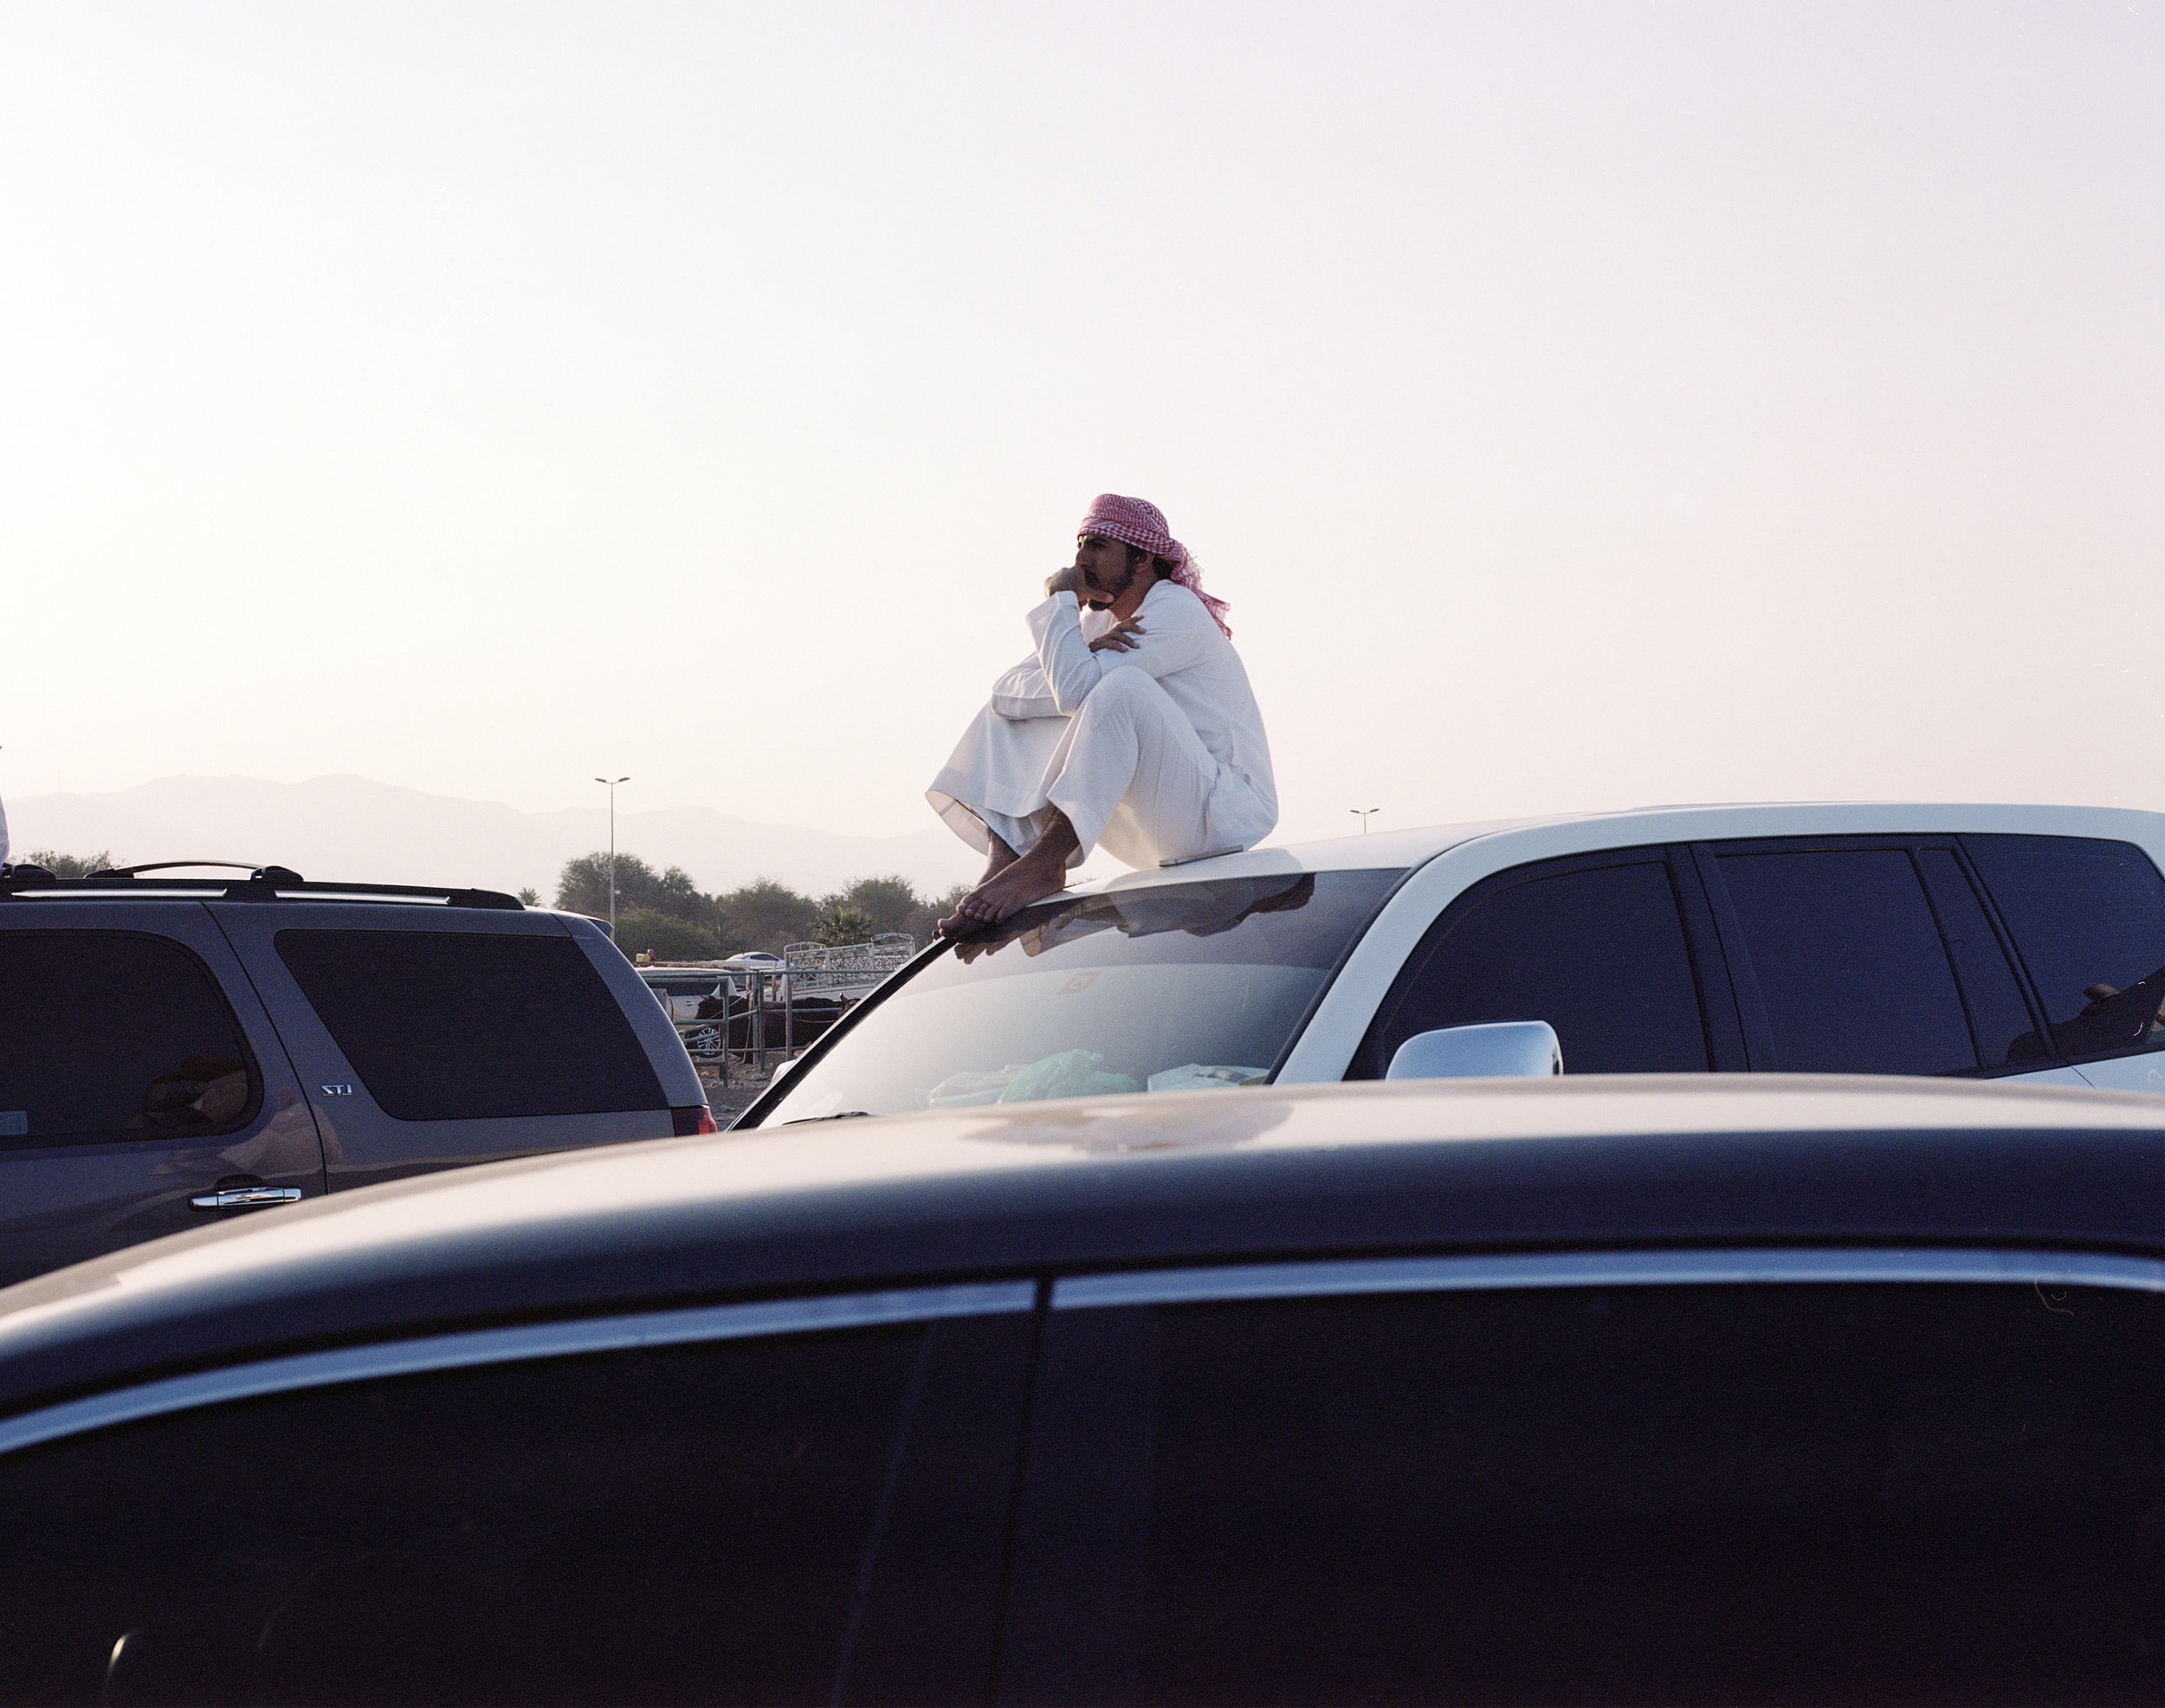 A man watching a bull fighting match in Fujairah from this car, 2017-